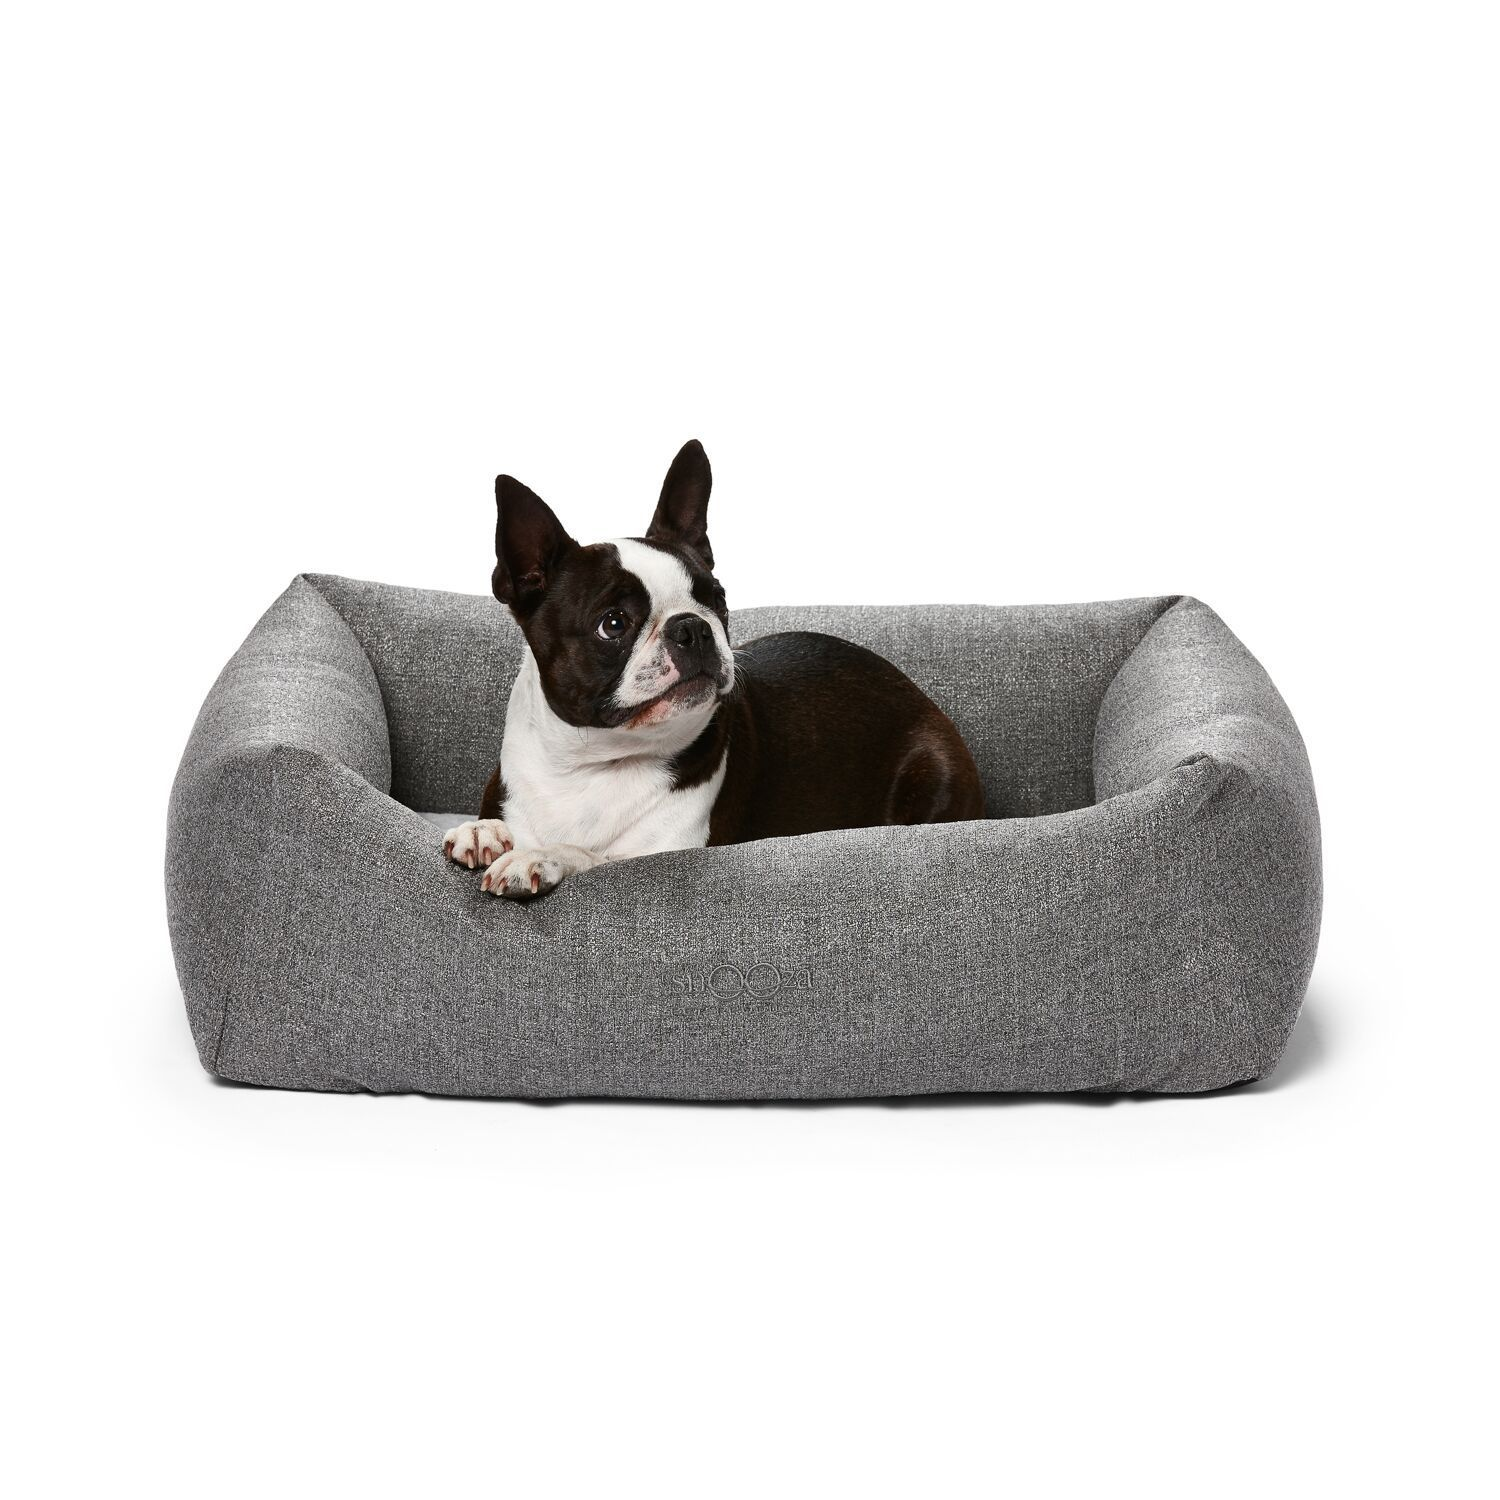 Bumper Bed Oslo Extra Large Dog Beds Extra Large Dog Bed Dog Bed Large Washable Dog Bed